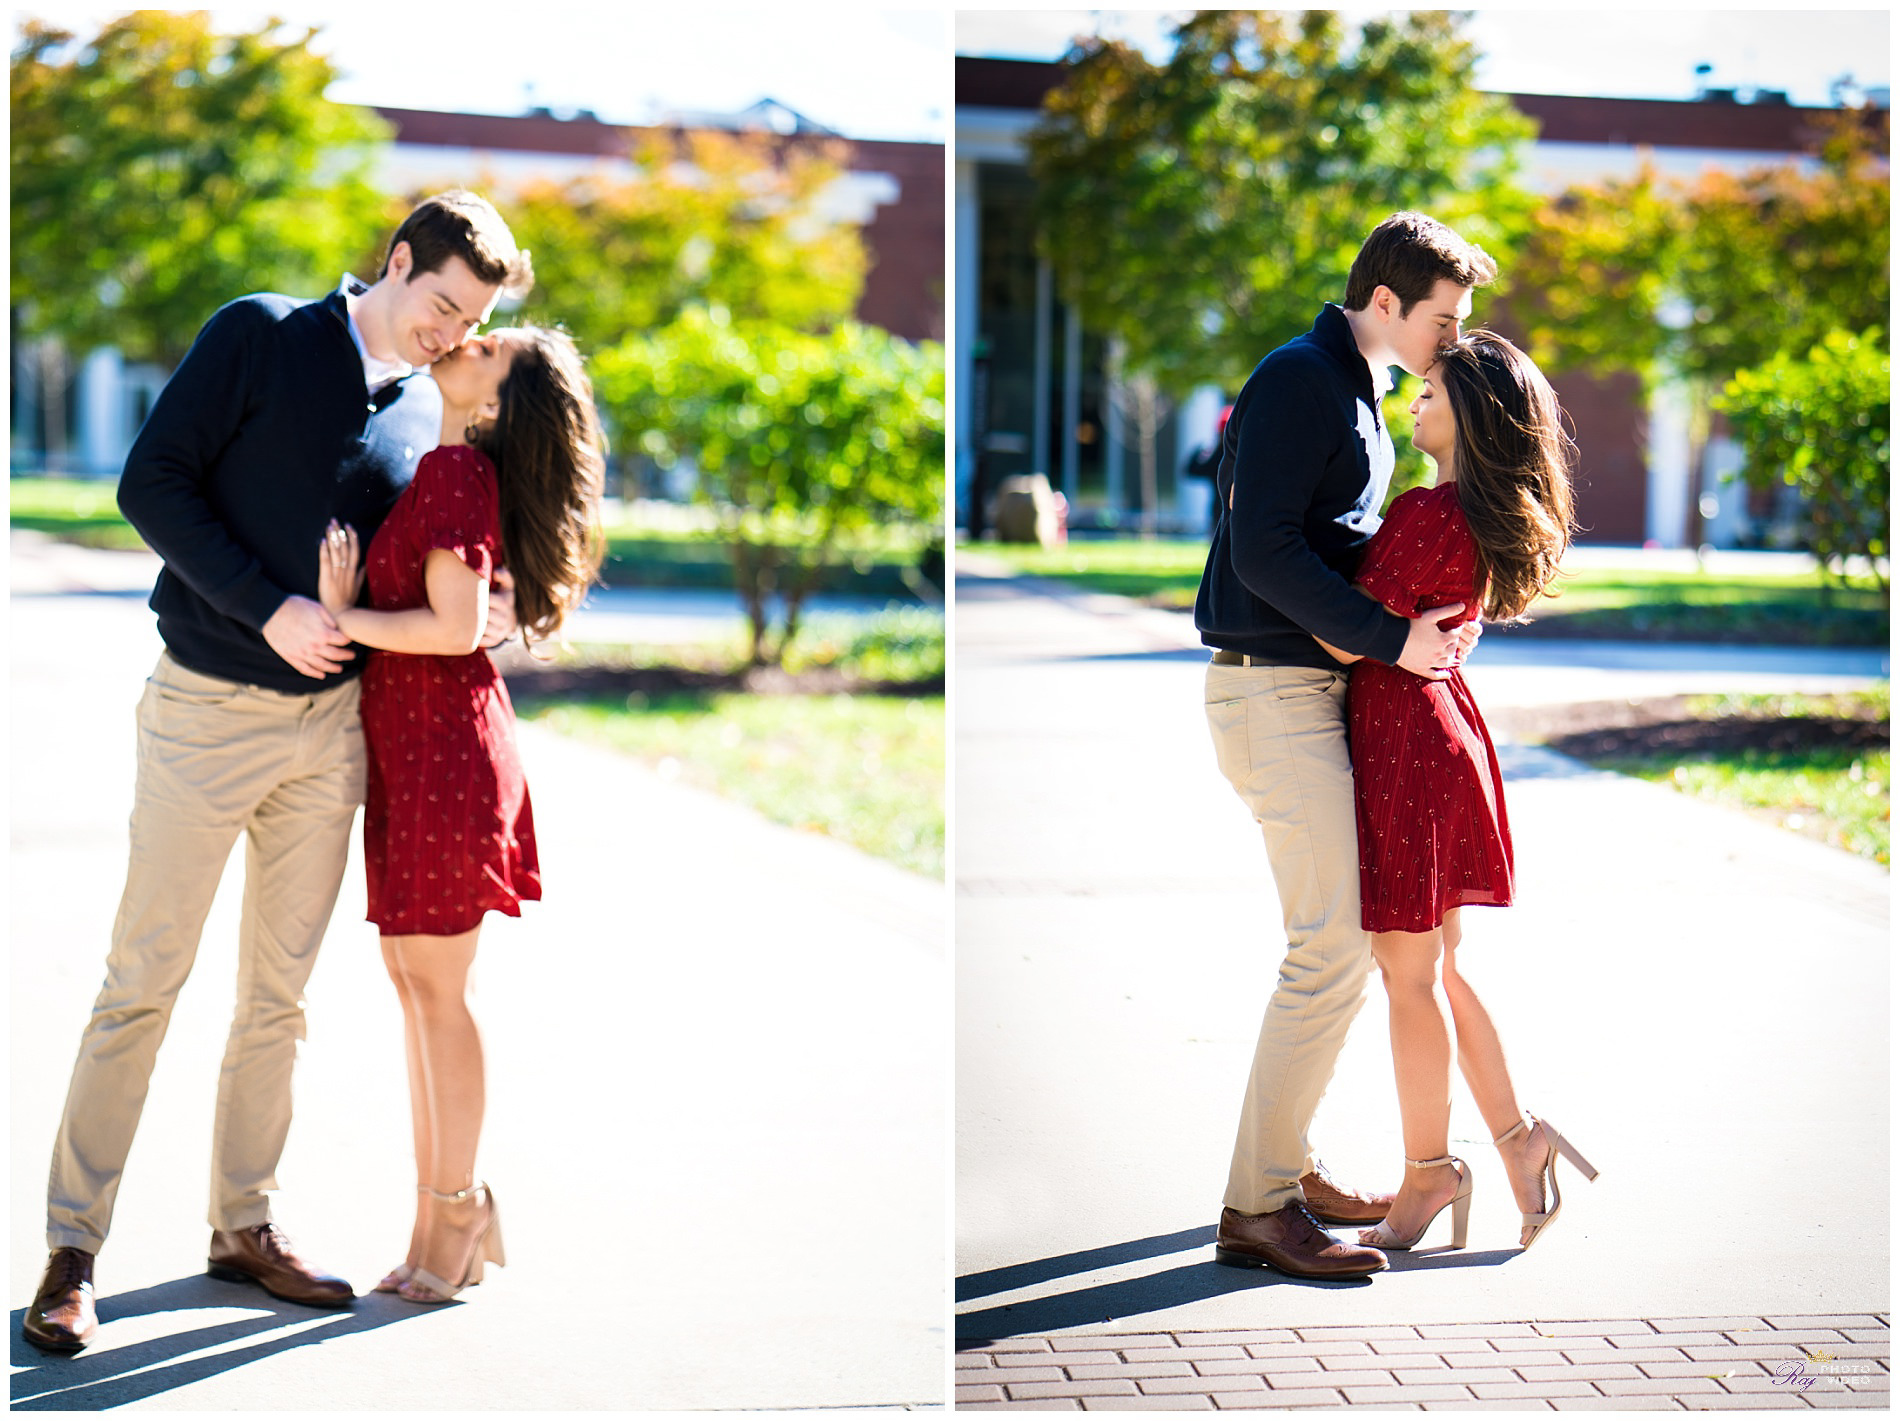 The-College-of-New-Jersey-Engagement-Shoot-Prerna-Kevin14.jpg